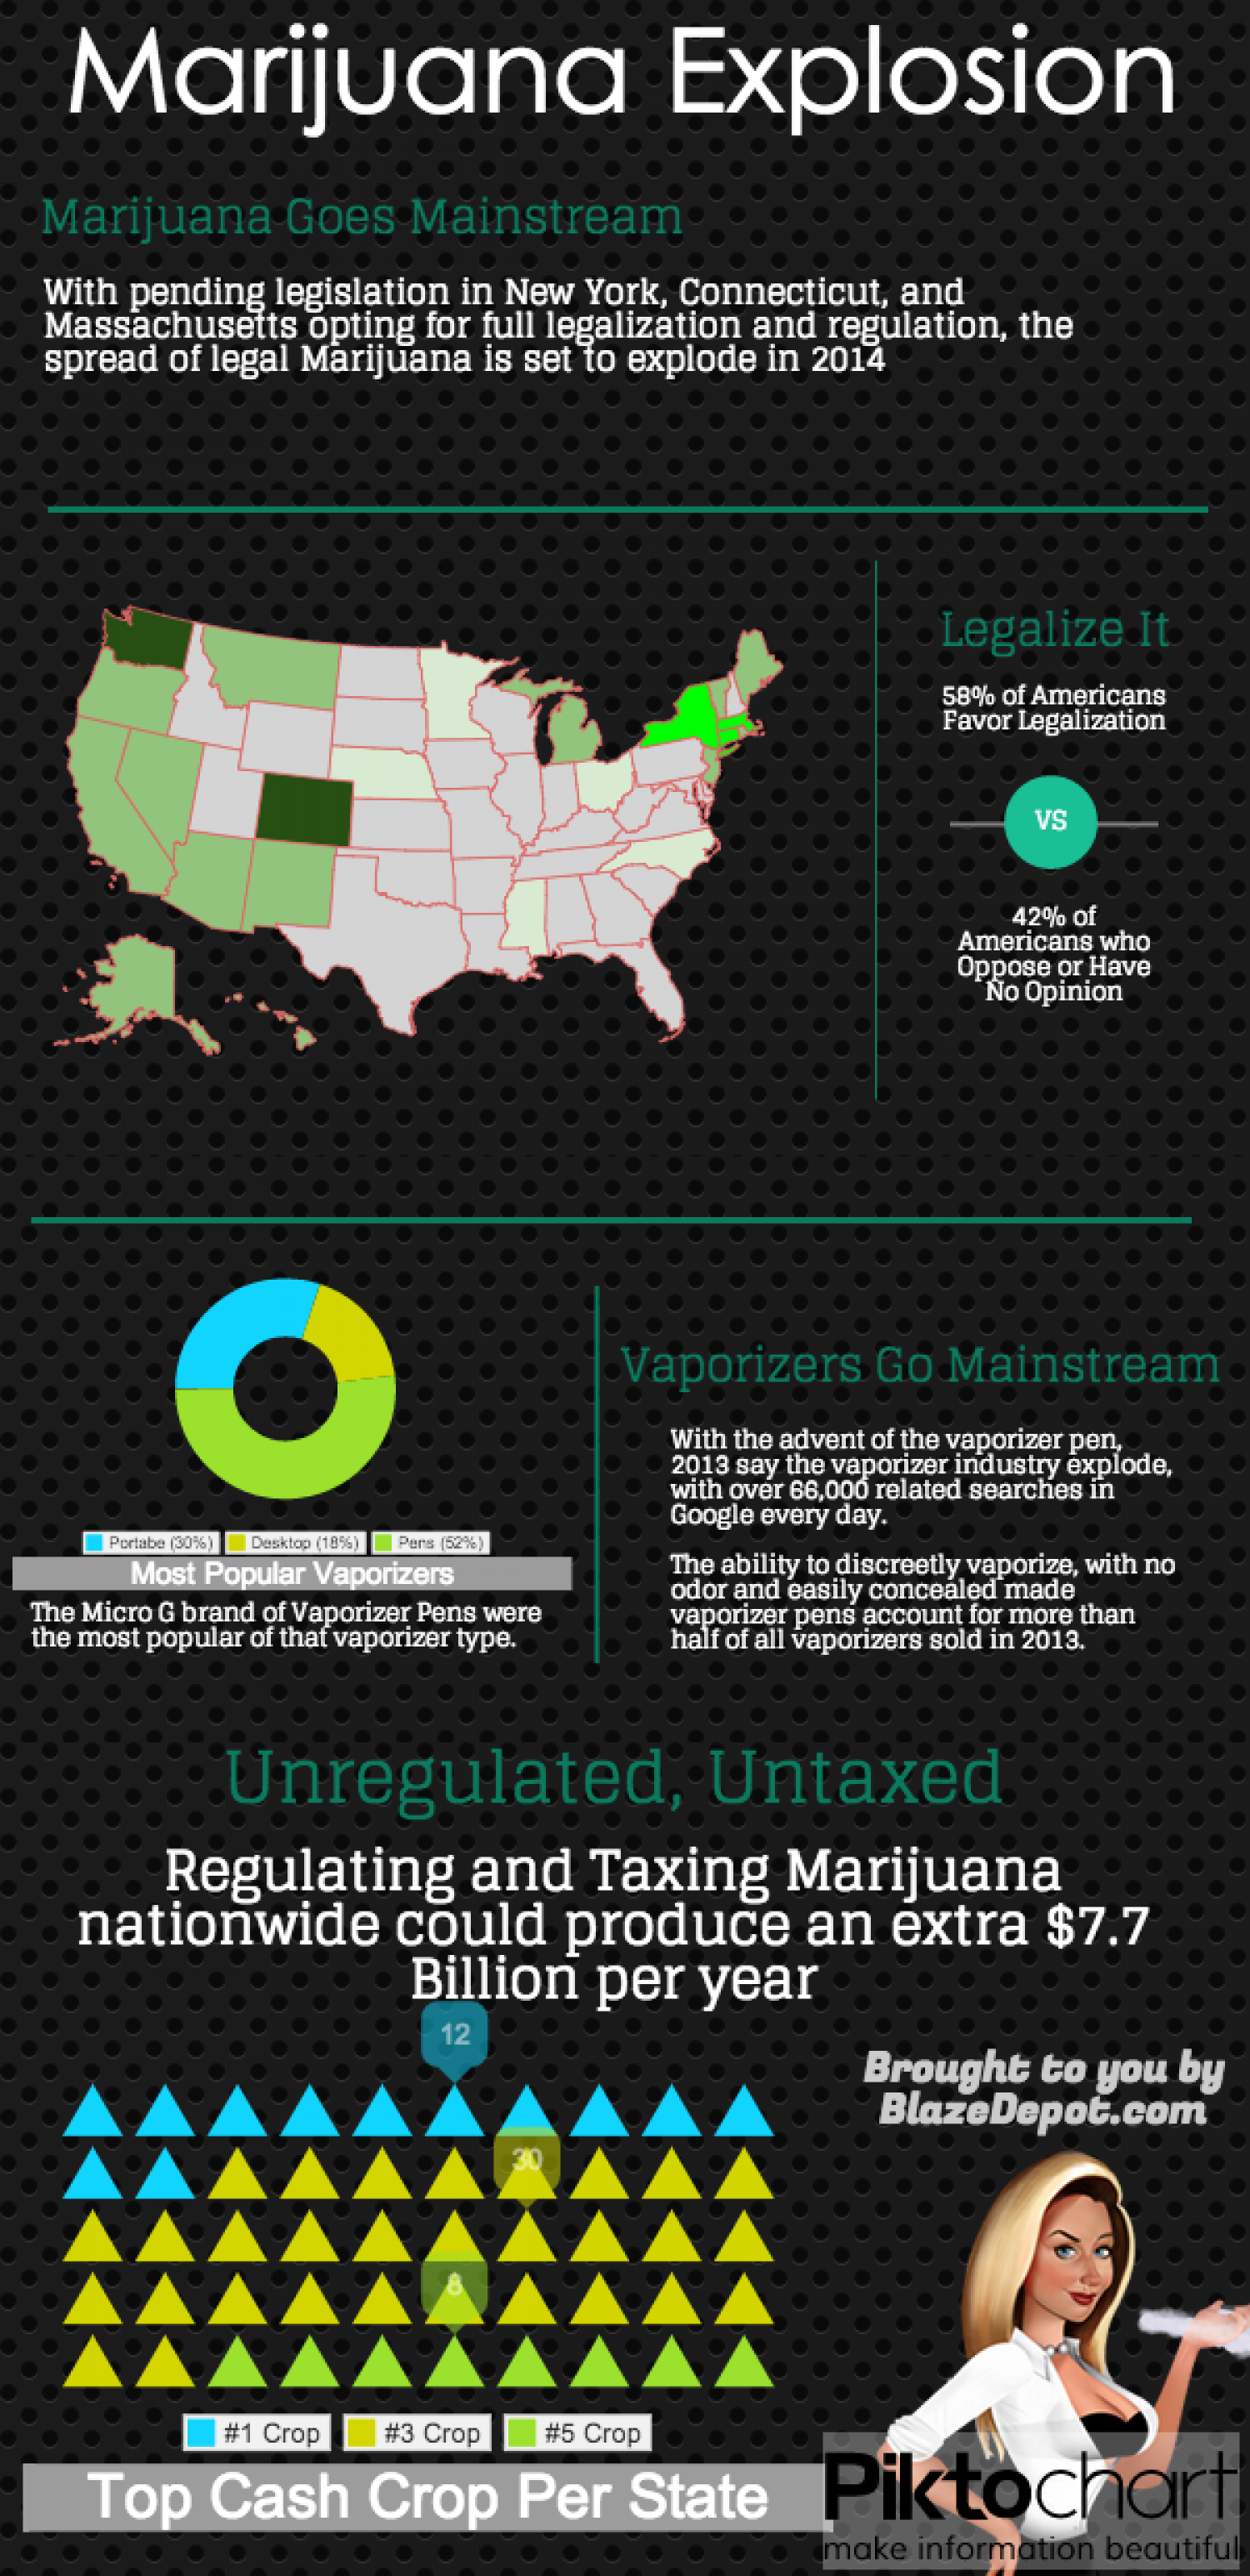 Legal Marijuana Explosion Infographic